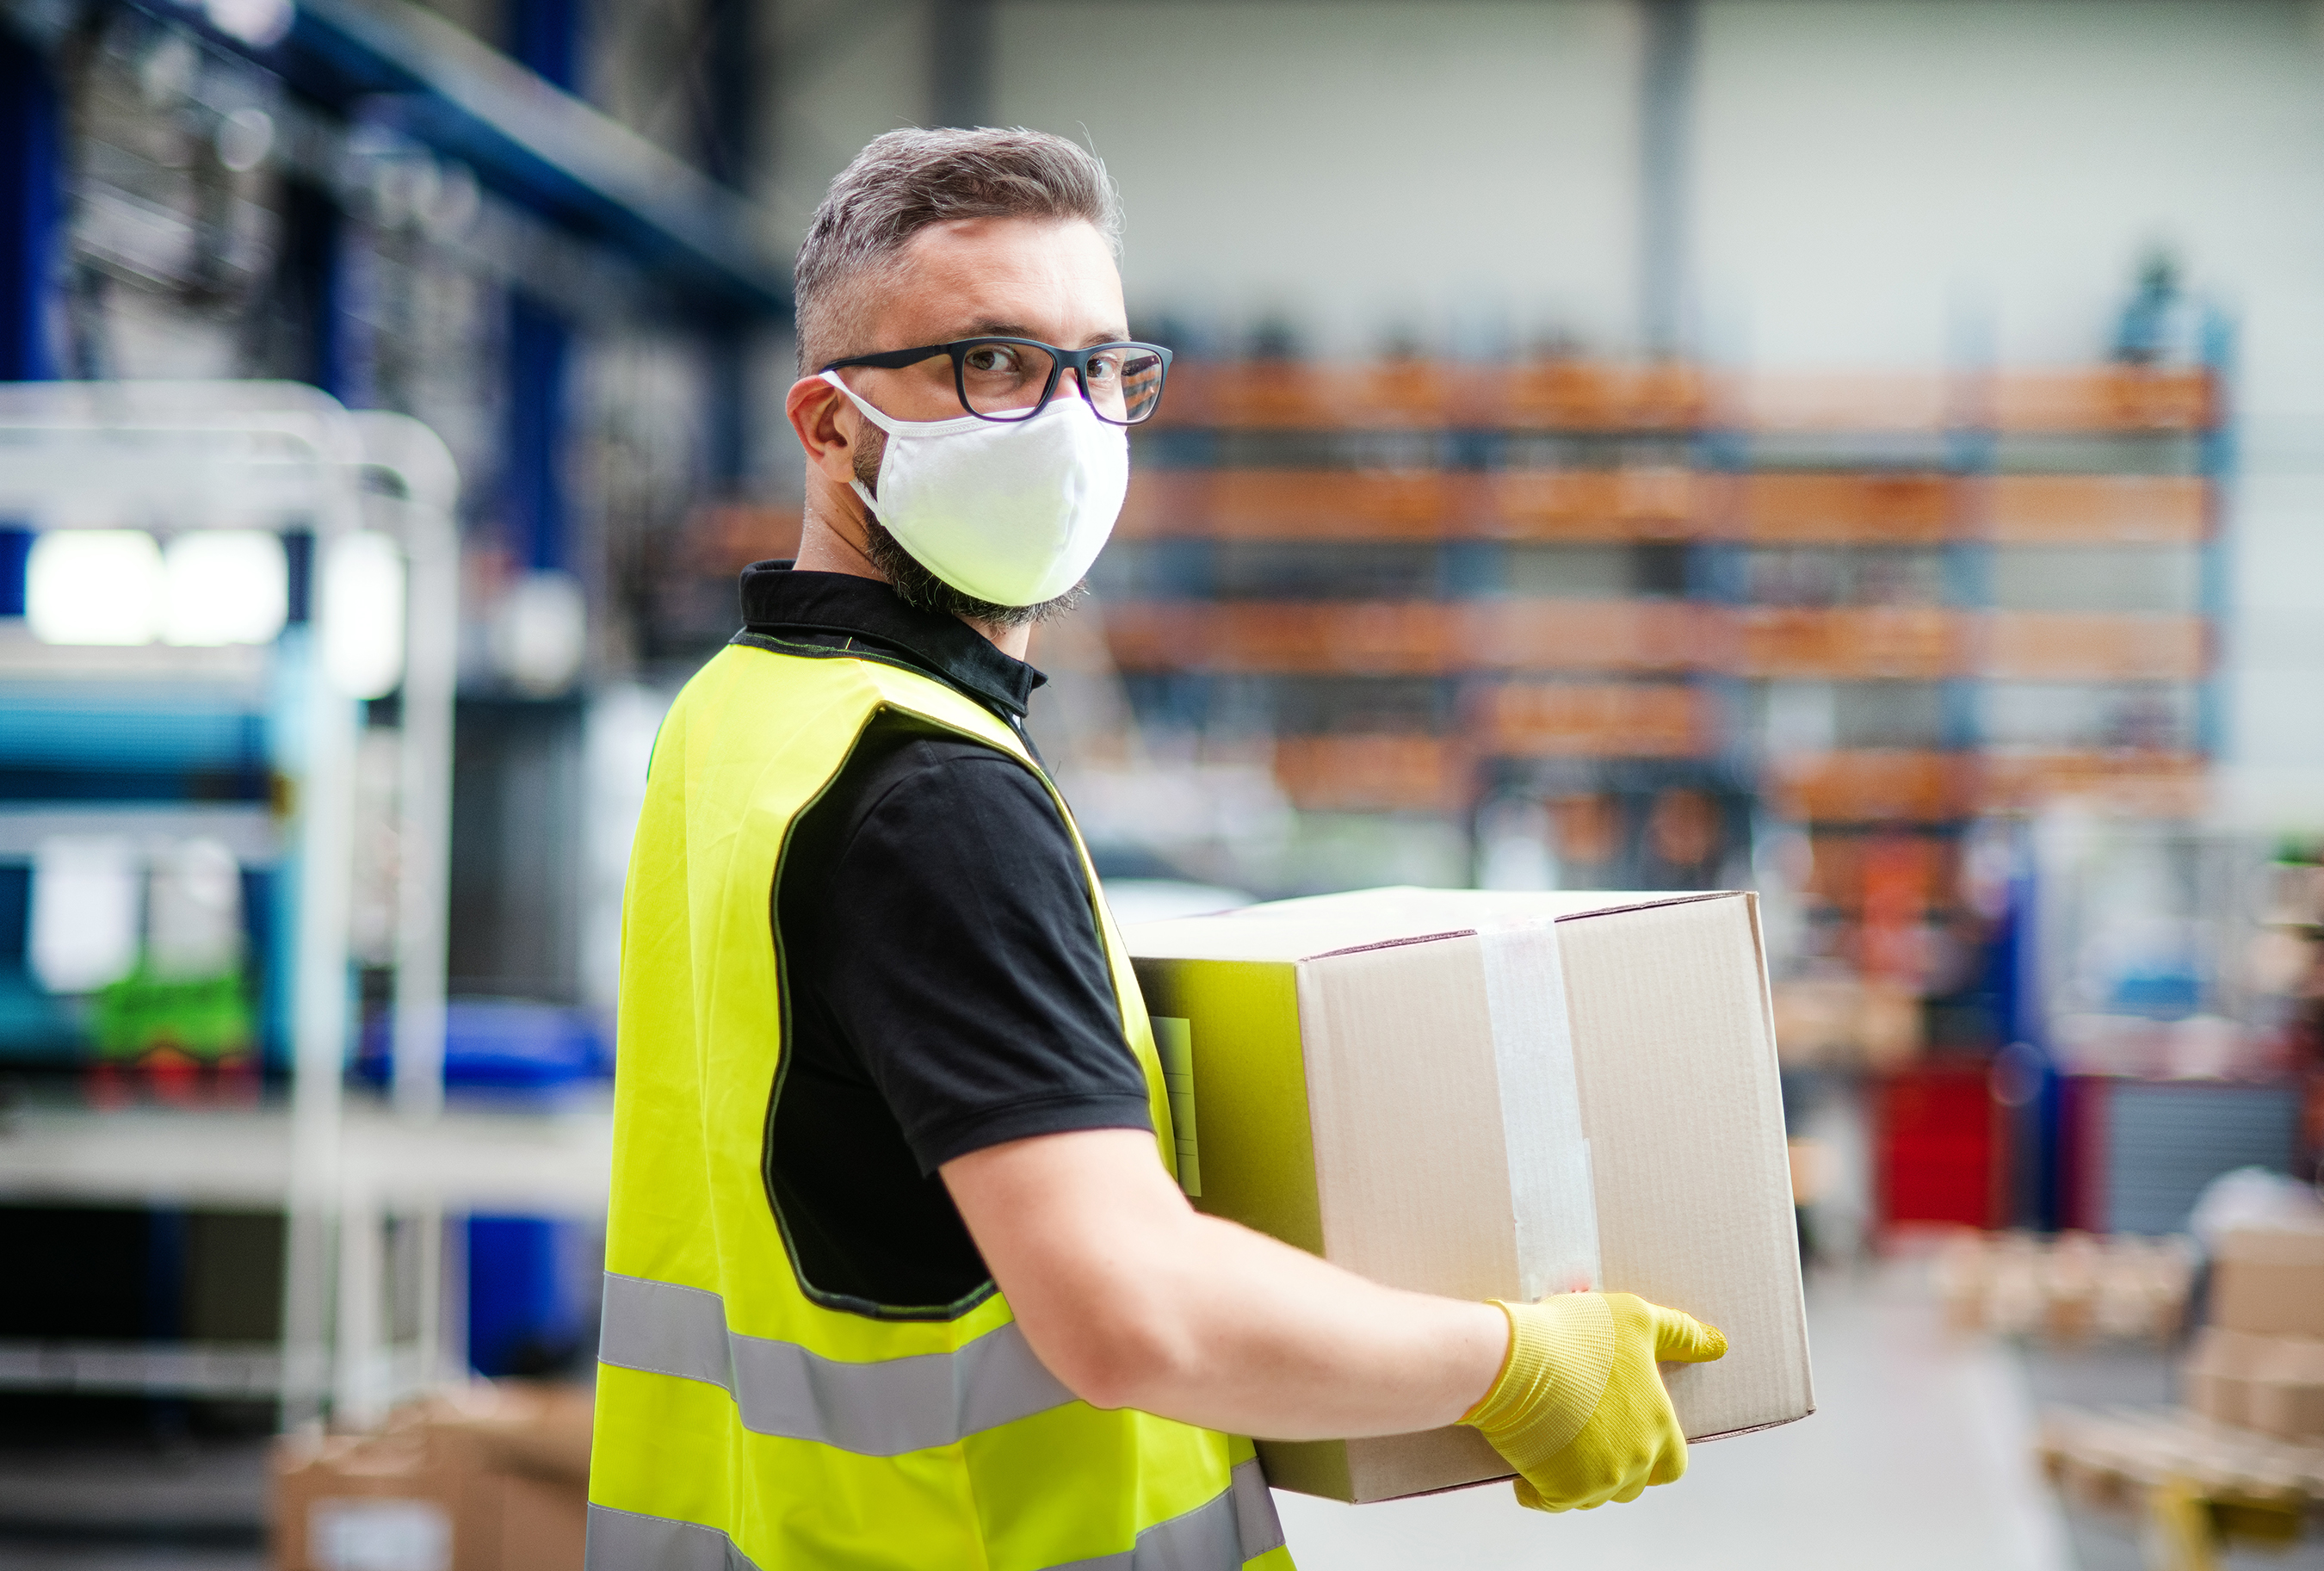 Today's crisis and workforce needs in certain sectors, like industrial jobs and warehousing, has proven MyWorkChoice's model essential in mobilizing hundreds of much needed workers to keep the supply chain moving.